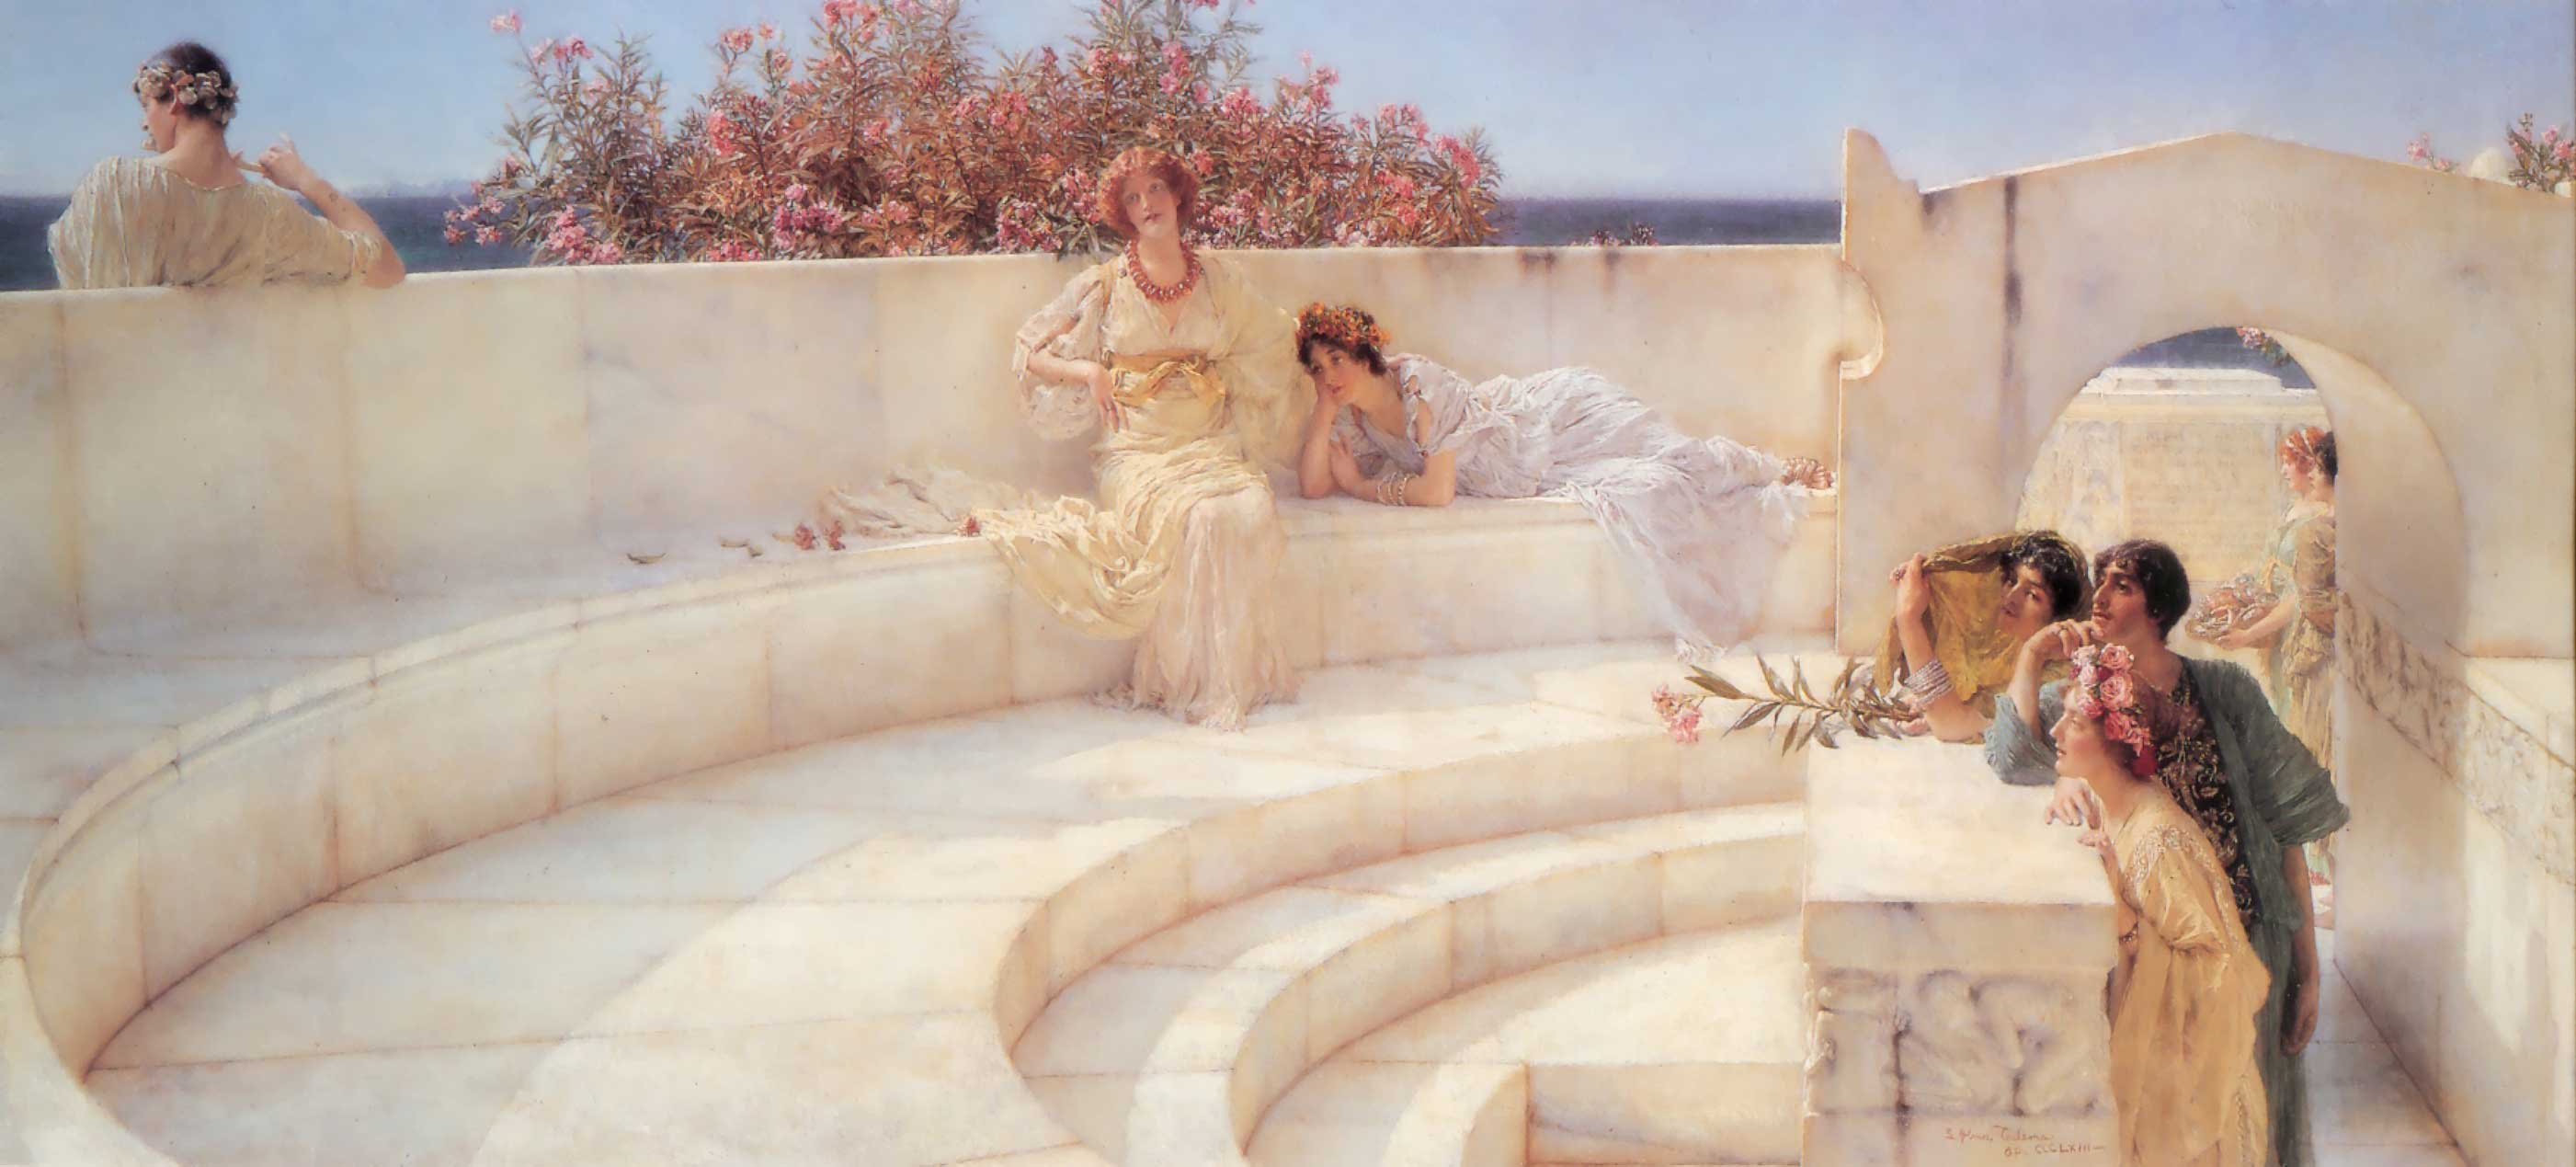 Lawrence Alma-Tadema - Page 2 LawrenceAlmaTadema-Under-the-Roof-of-Blue-Ionian-Weather-1903